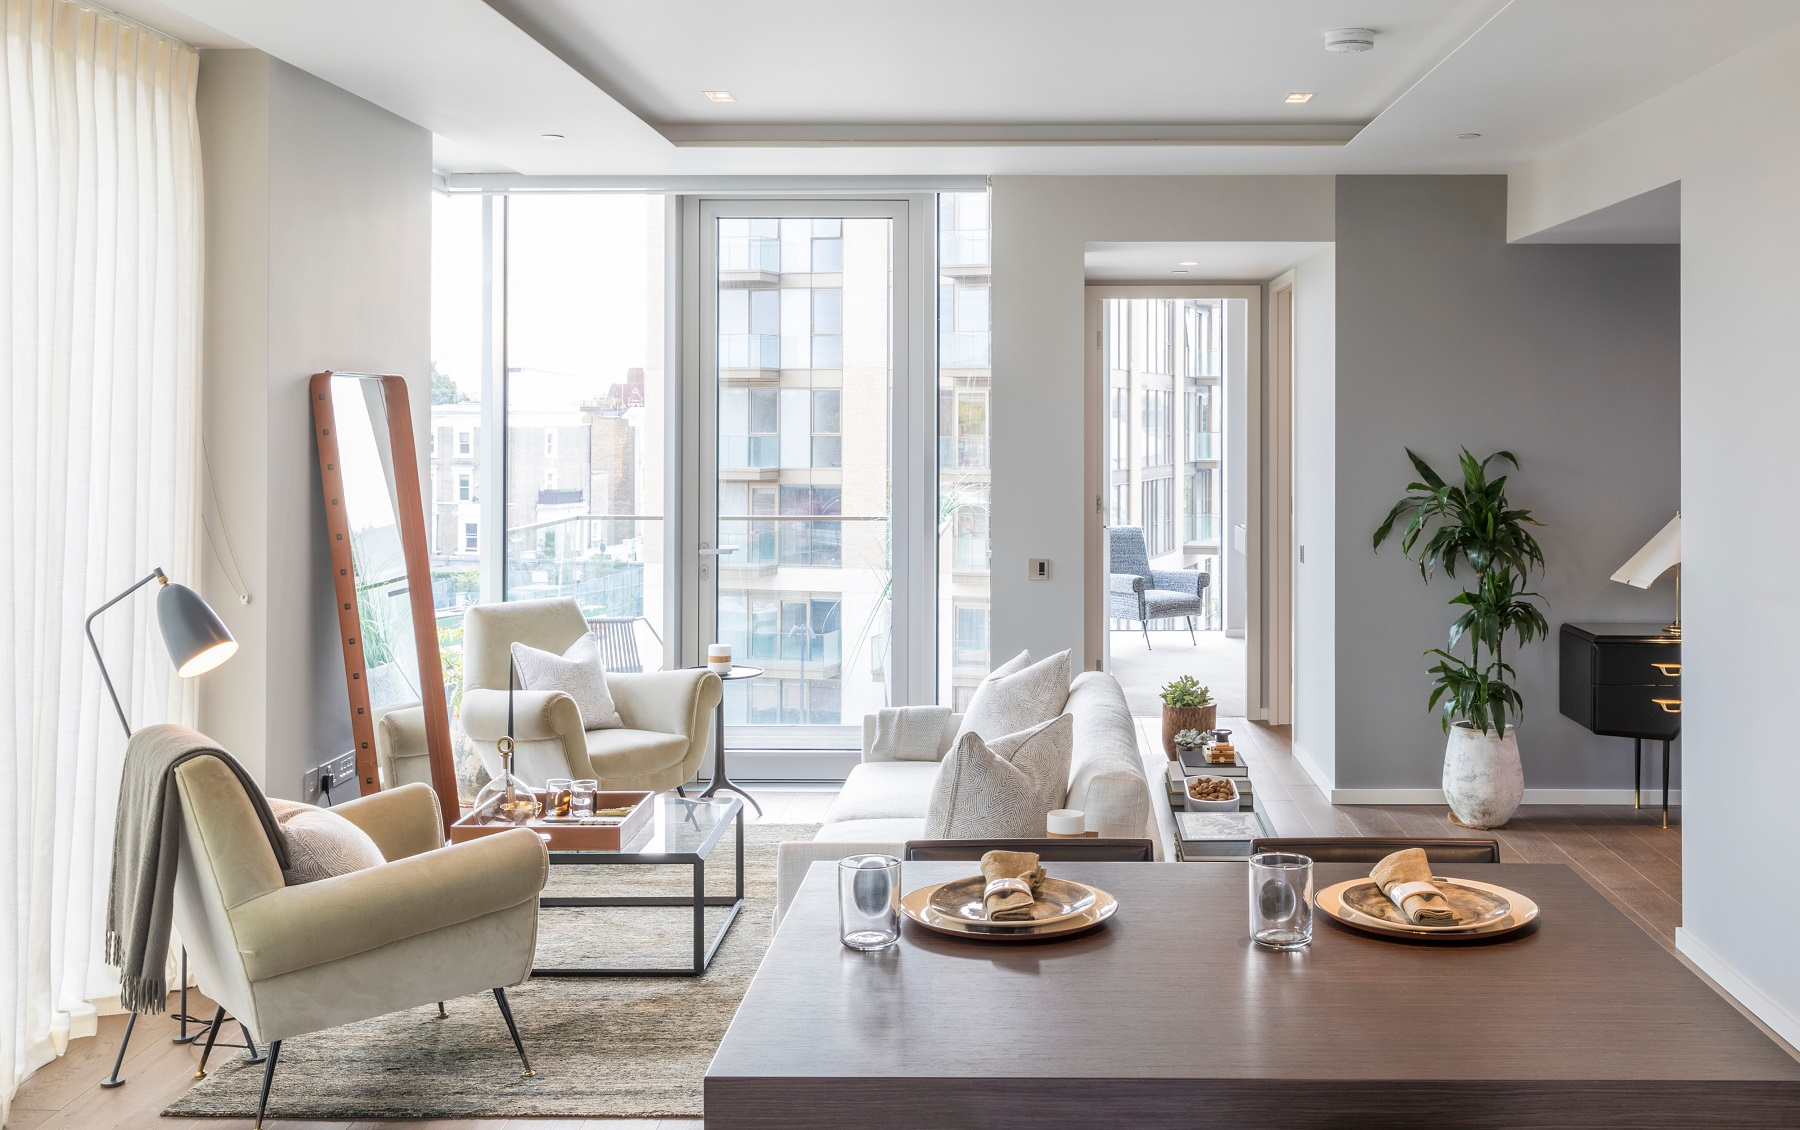 Apartment for Sale at Lillie Square London, England United Kingdom